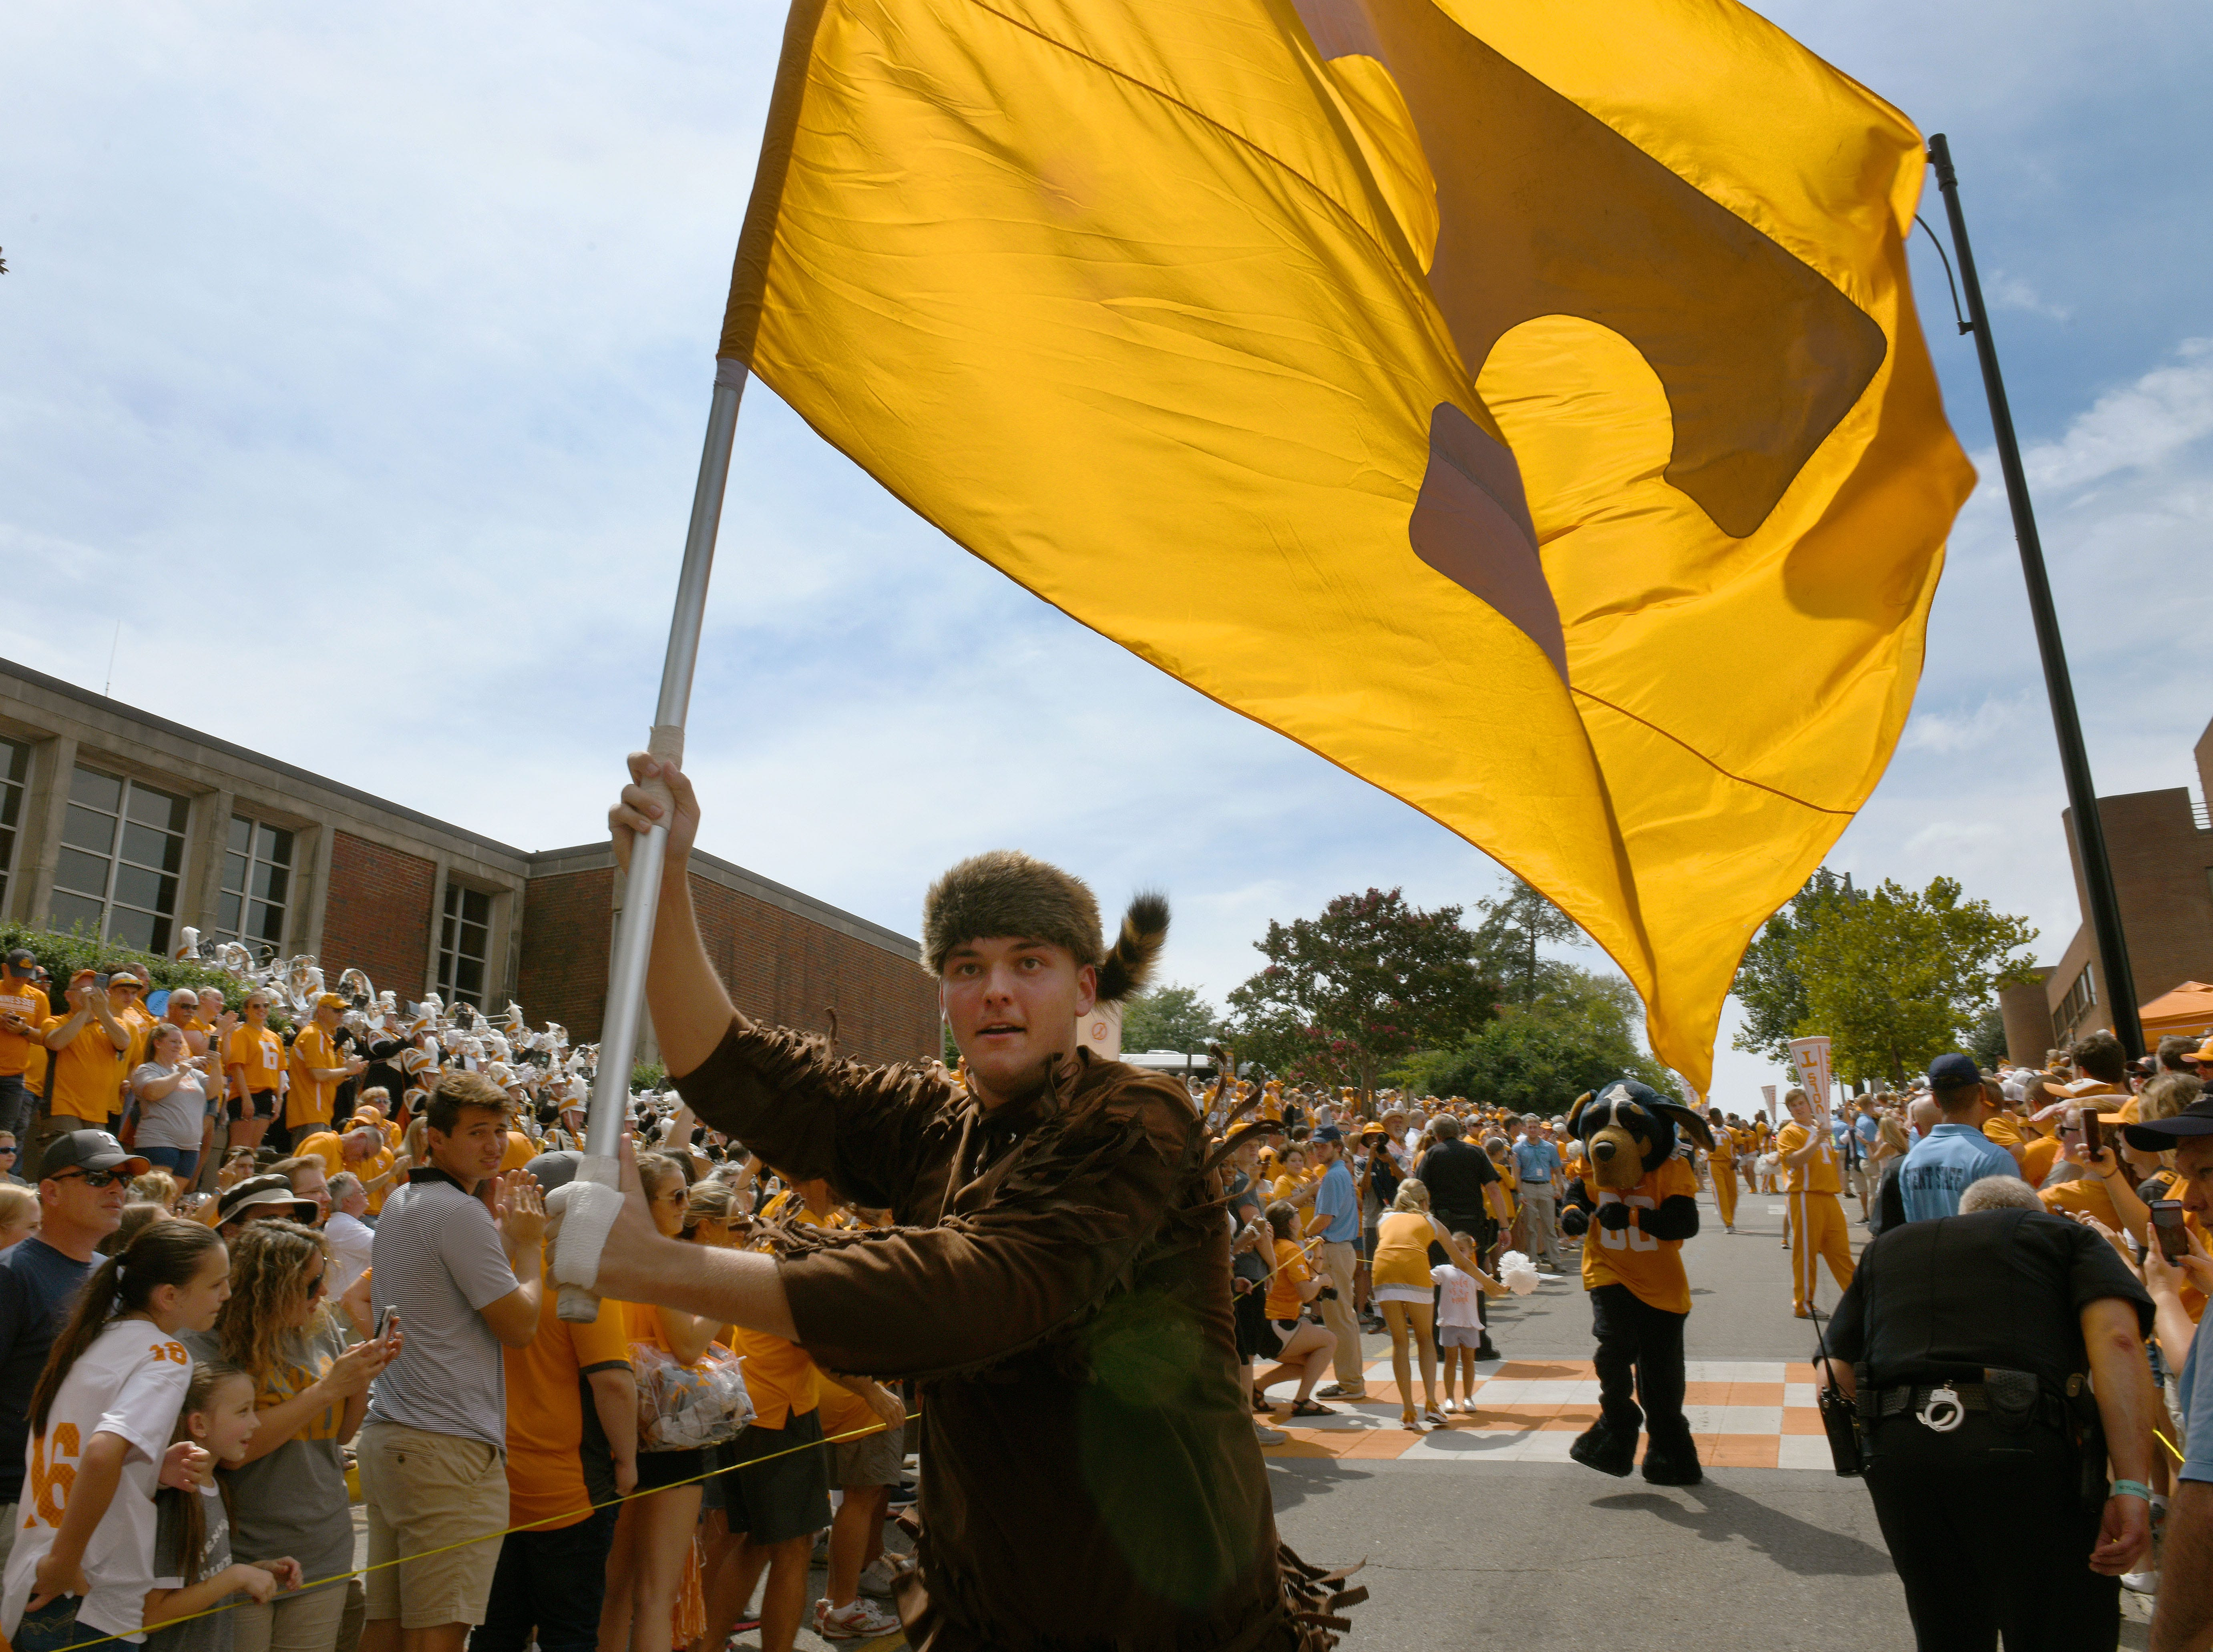 The Volunteer Cainan Phillips carries the flag during pre-game activities before the game against East Tennessee State Saturday, September 8, 2018 at Neyland Stadium in Knoxville, Tenn.